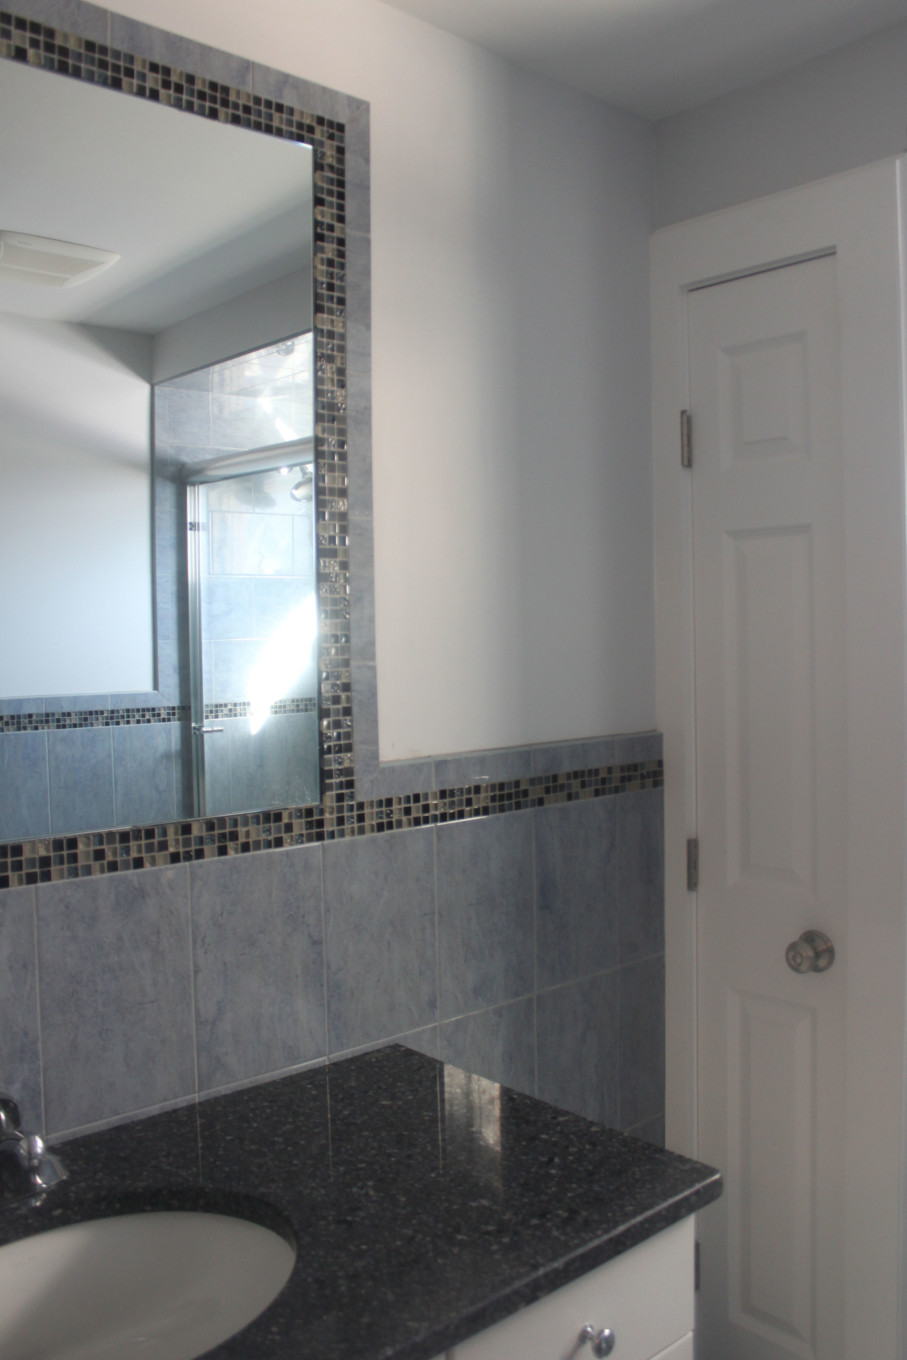 Palest Gray/Blue in Bathroom